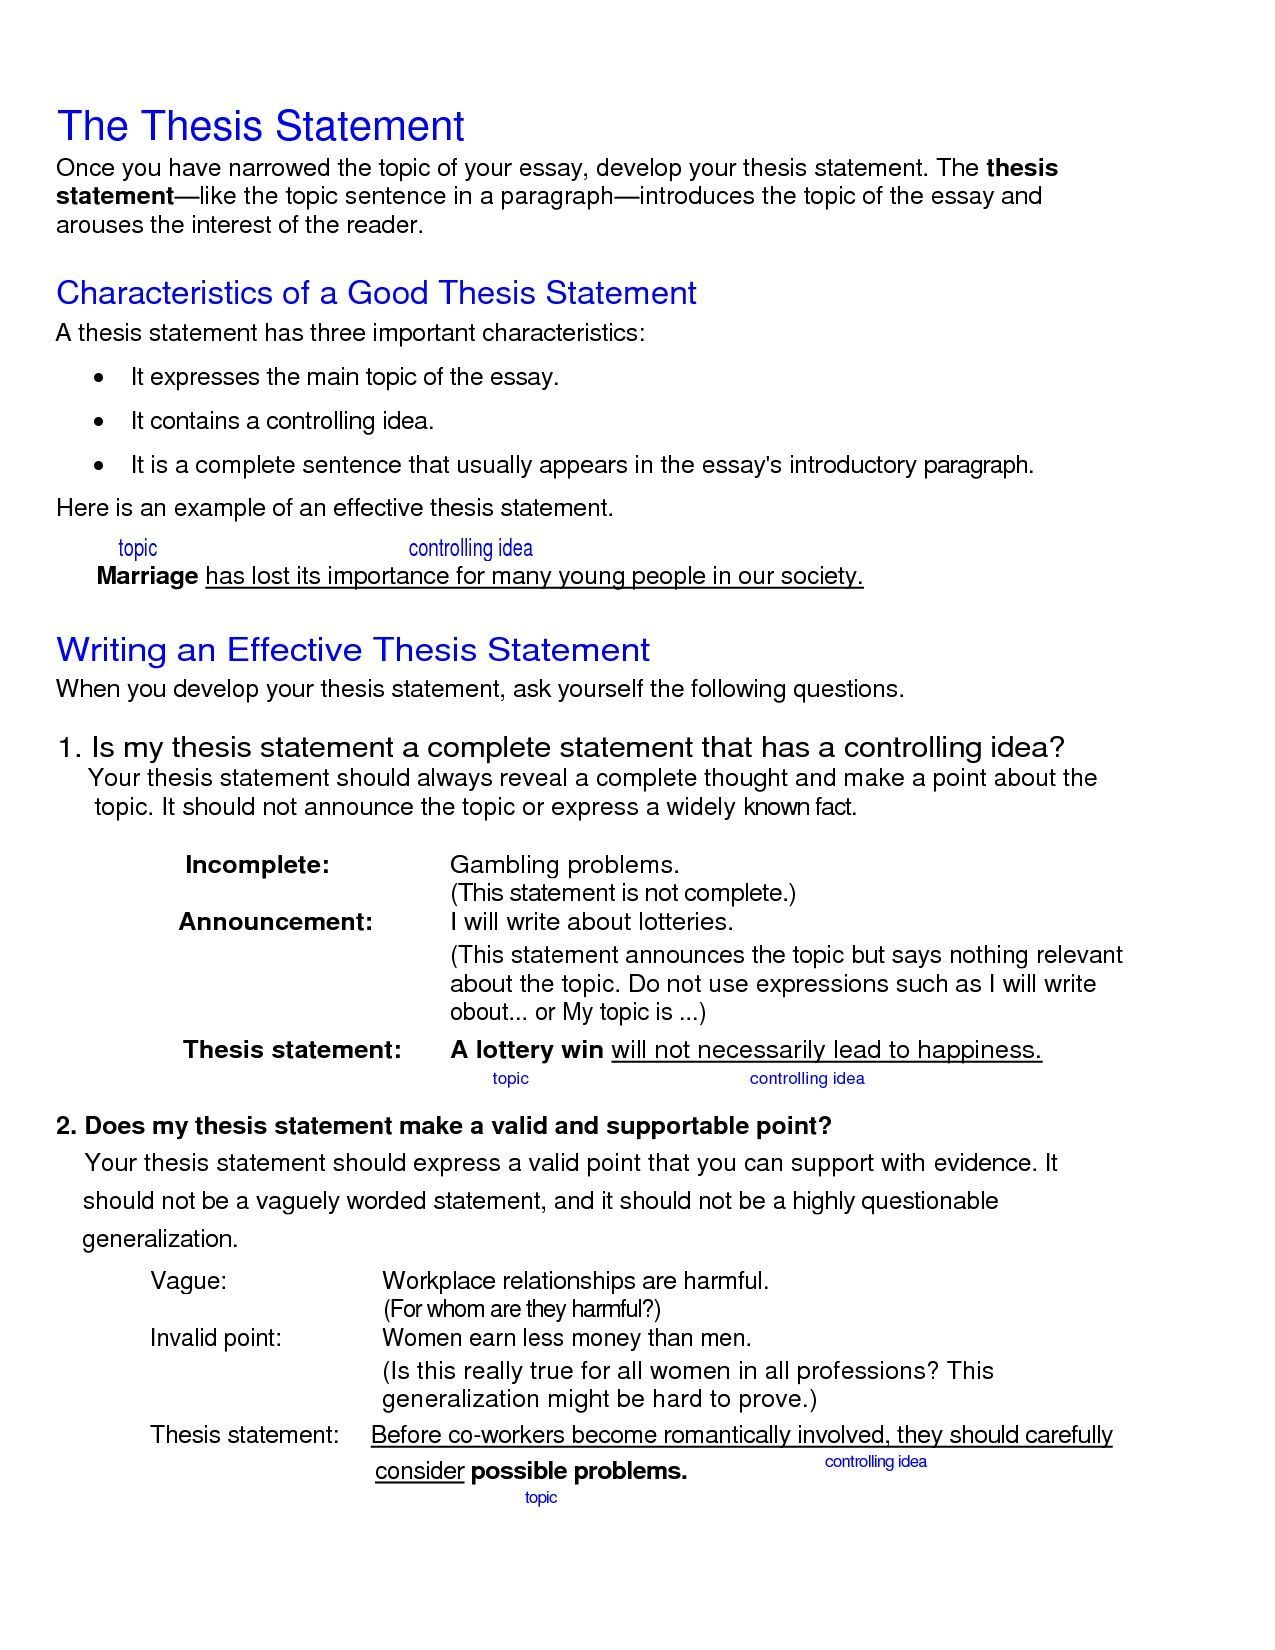 Thesis Statement Examples | Thesis Statement Examples, Thesis Statement, Essay  Writing